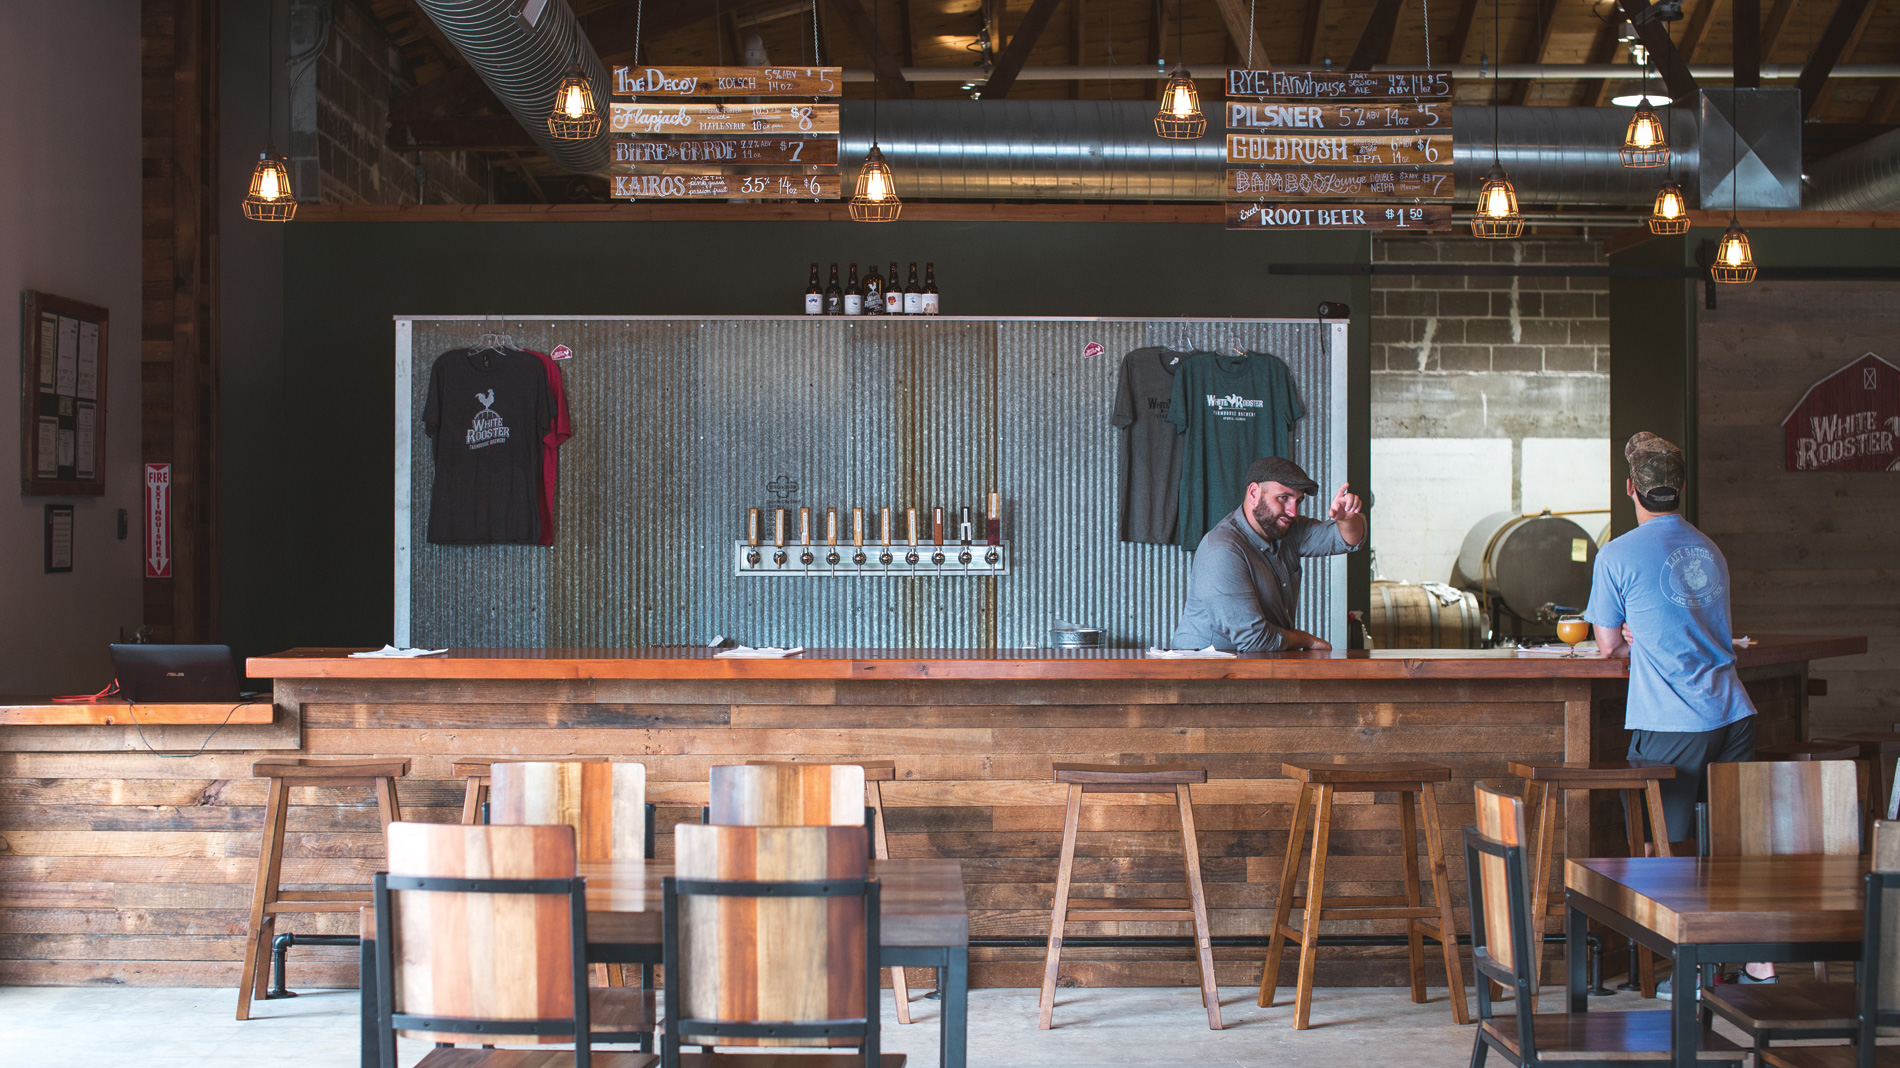 white rooster farmhouse brewery's tasting room in sparta, illinois